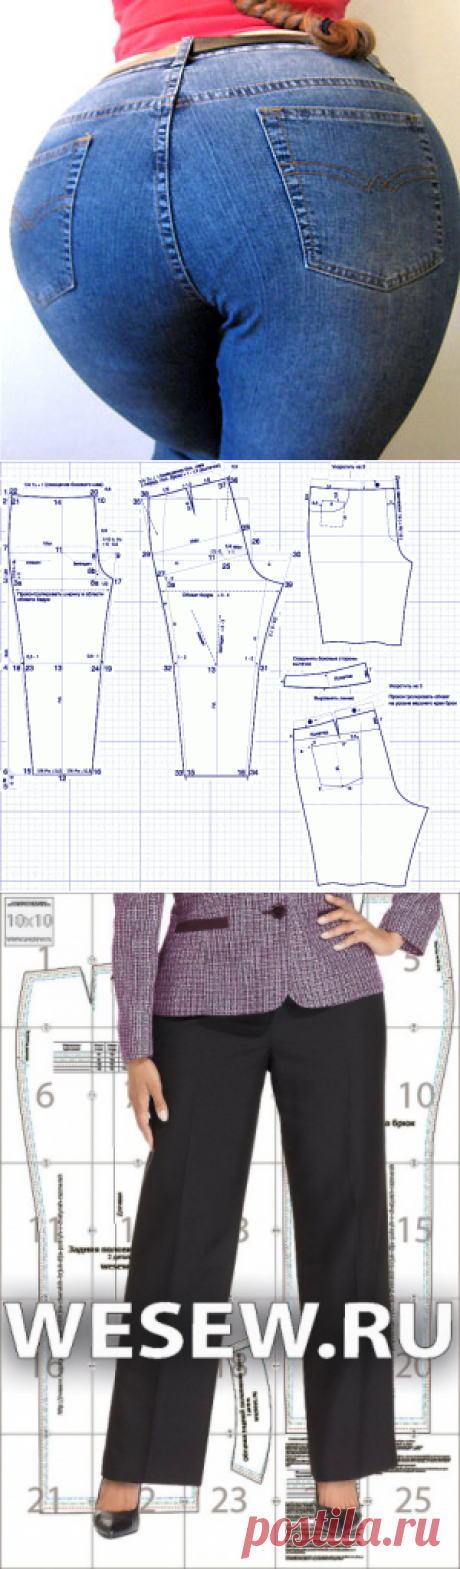 Search on Postila: trousers for full